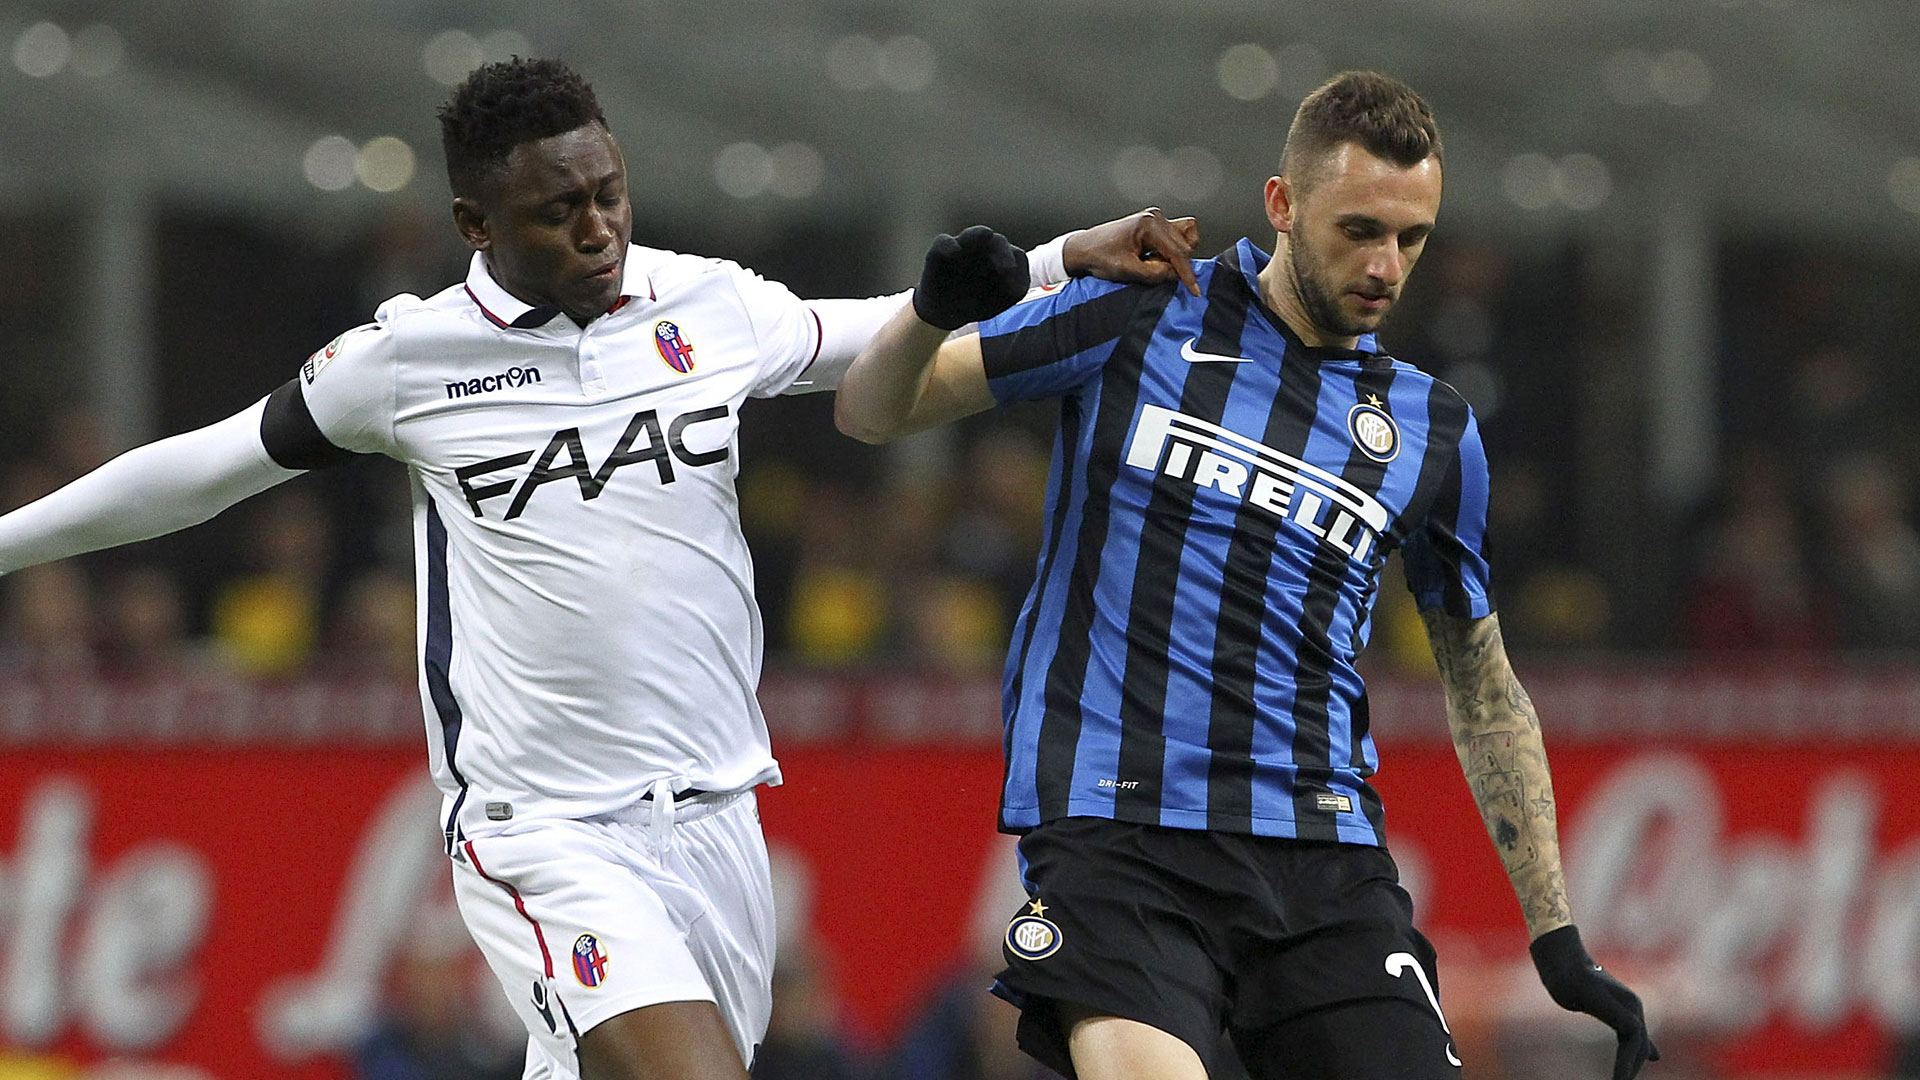 Video: Inter Milan vs Bologna